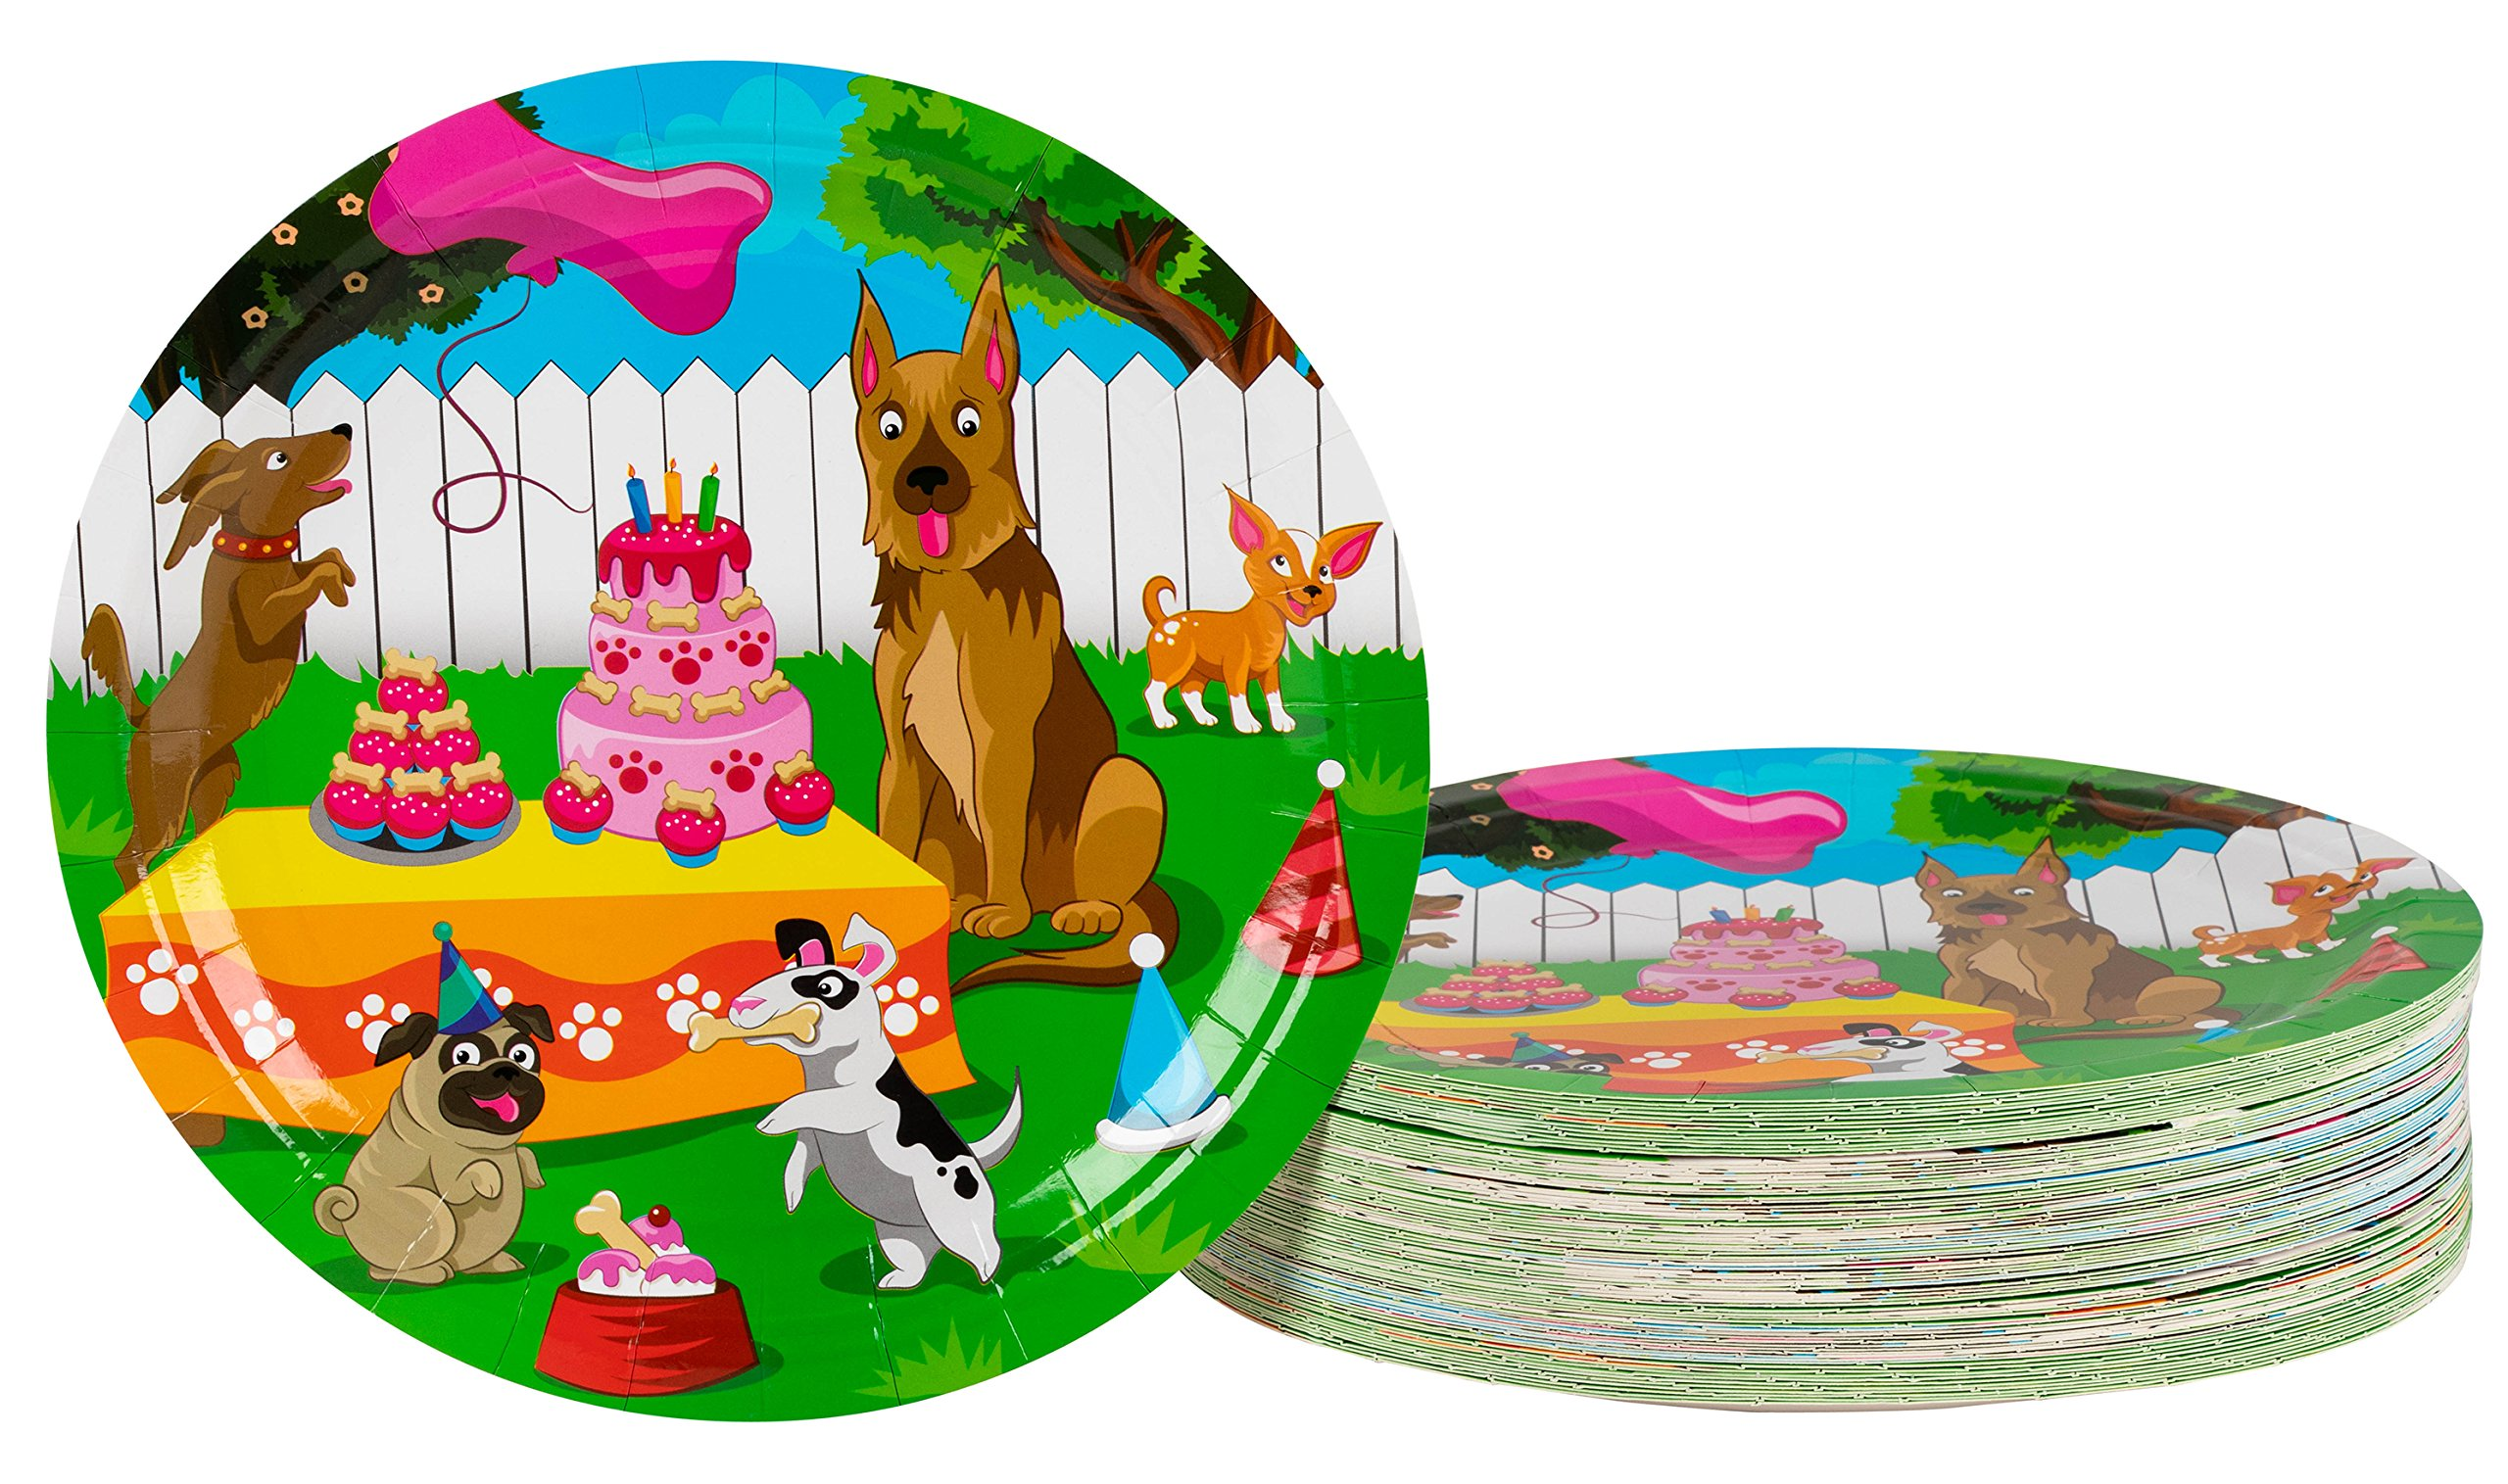 Disposable Plates - 80-Count Paper Plates, Puppy Party Supplies for Appetizer, Lunch, Dinner, and Dessert, Kids Birthdays, 9 x 9 inches by Blue Panda (Image #1)